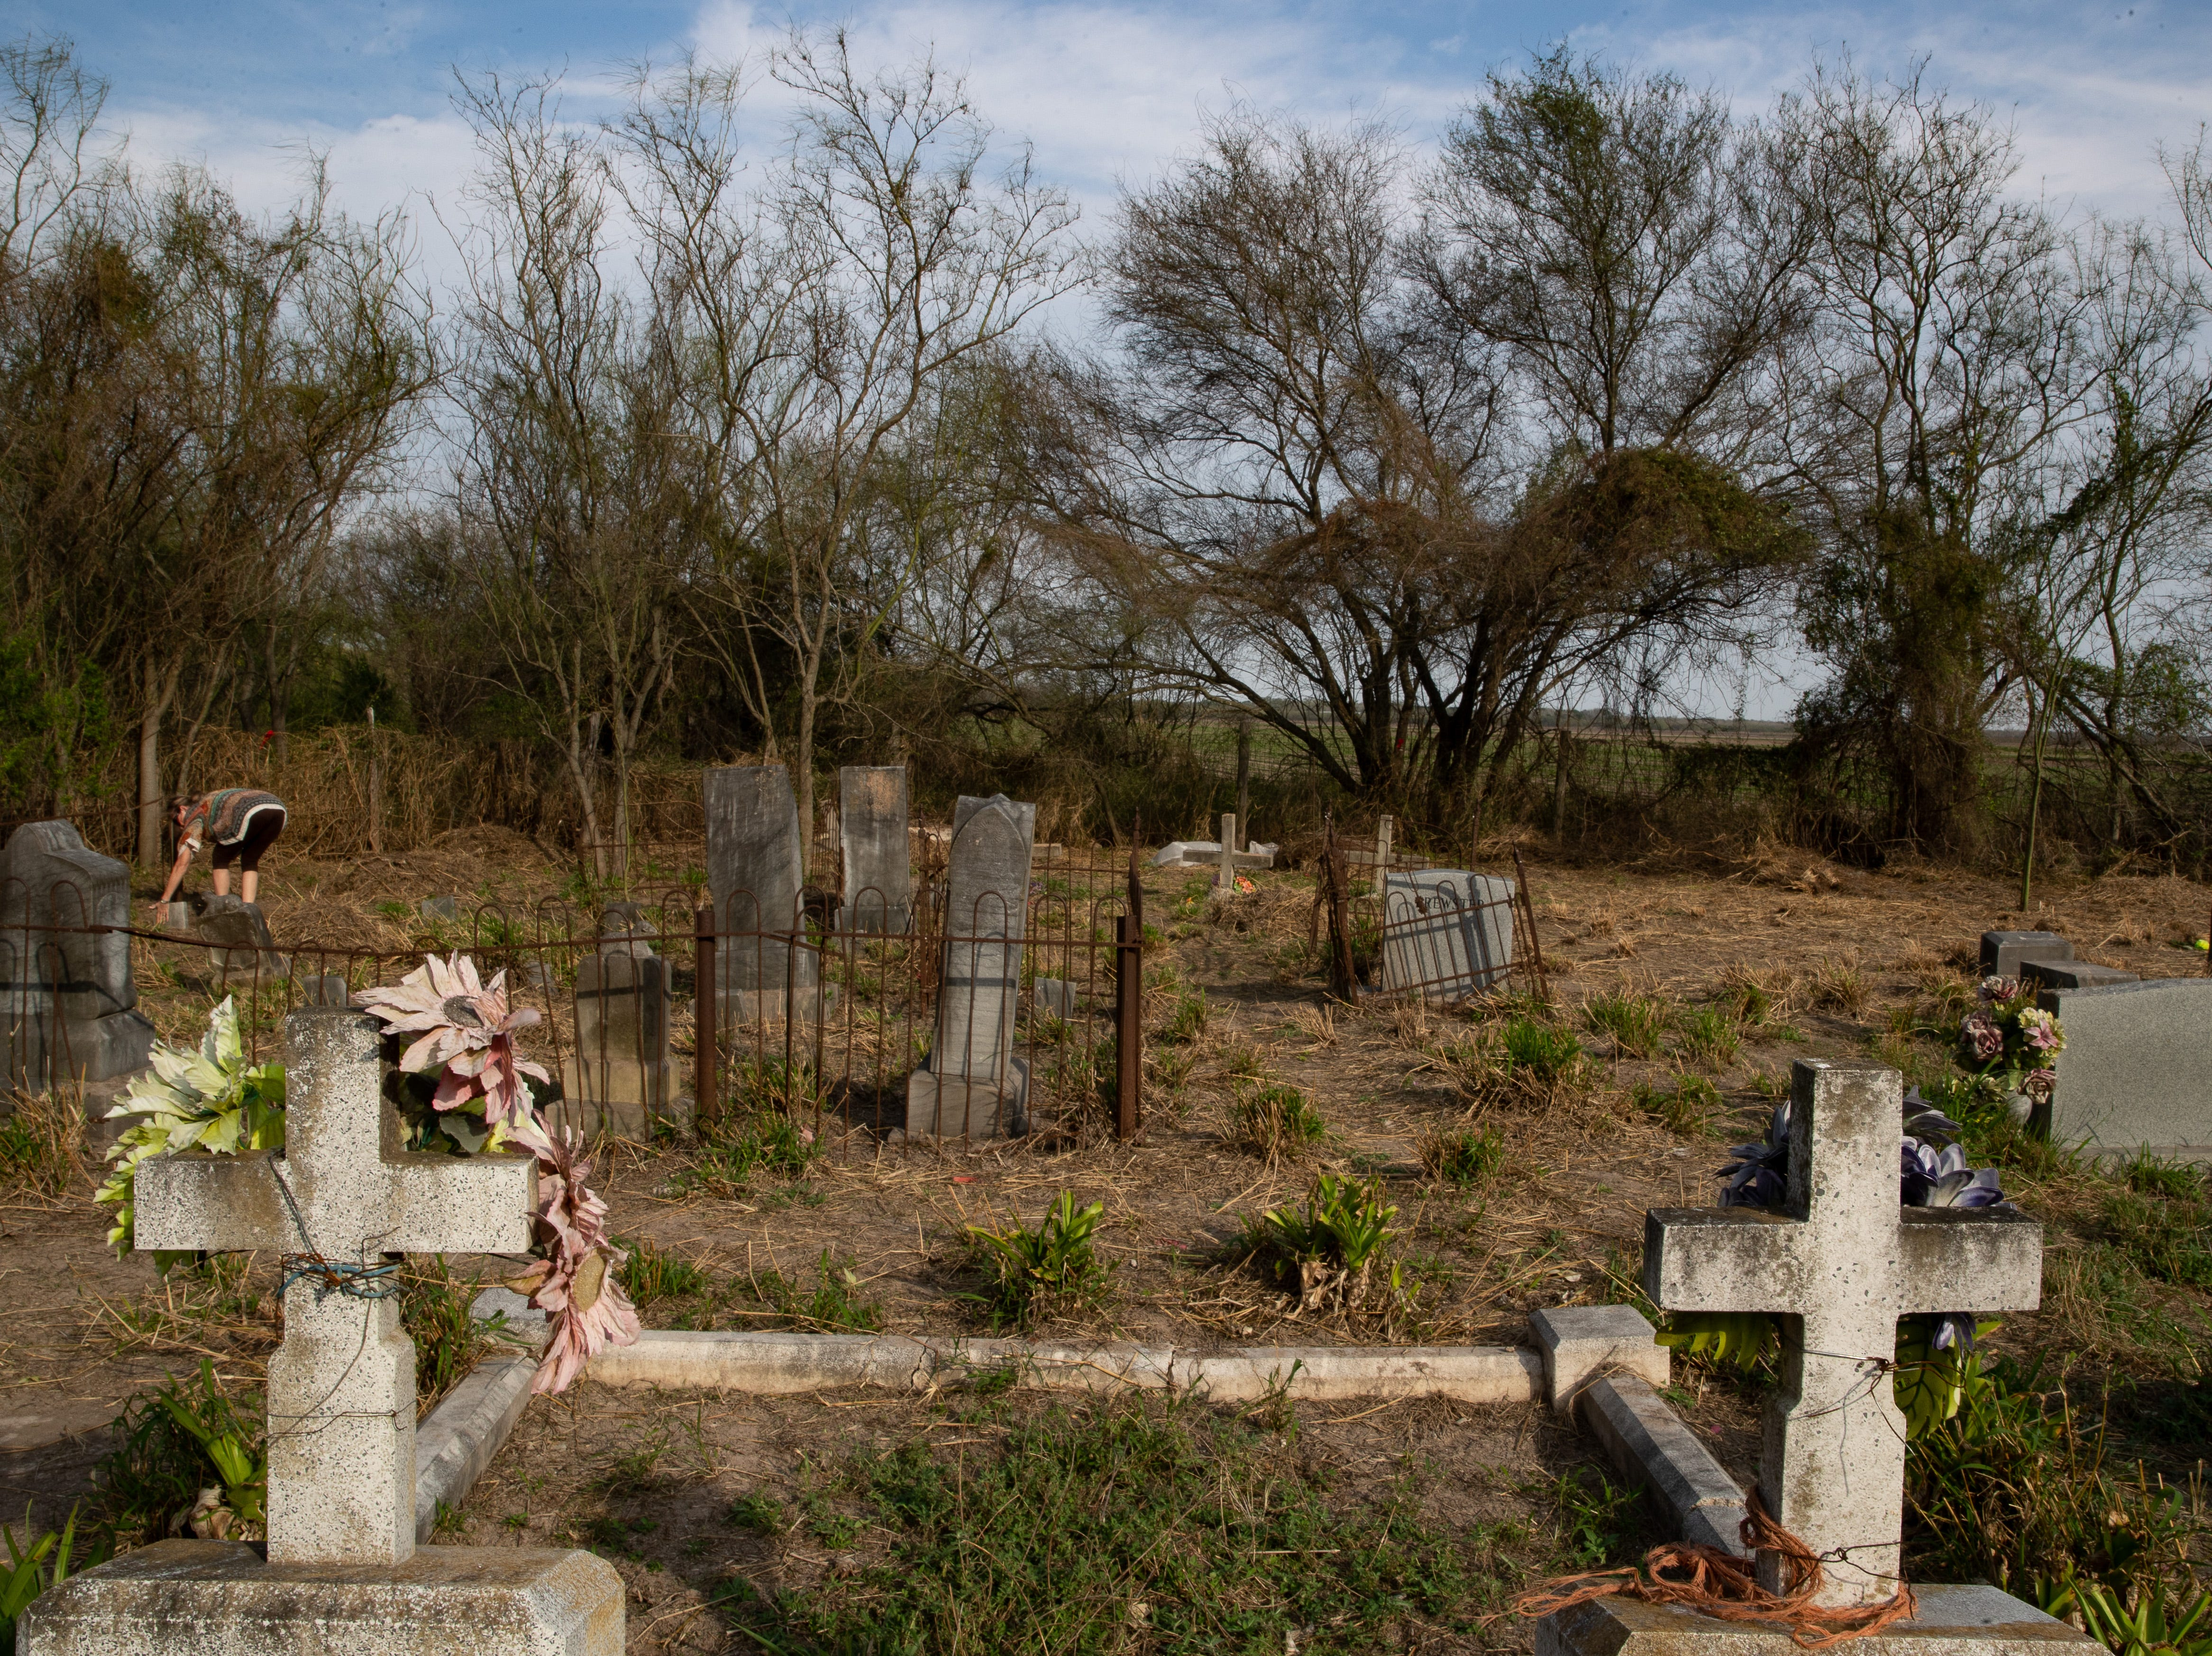 The Eli Jackson Cemetery in San Juan, Texas on Wednesday, Feb. 6, 2019. The soon-to-be-constructed border wall will be built on the levee north of the cemetery, placing the cemetery on the Mexico side of the wall. A group of people have set up a camp at the cemetery in protest of the wall's construction.